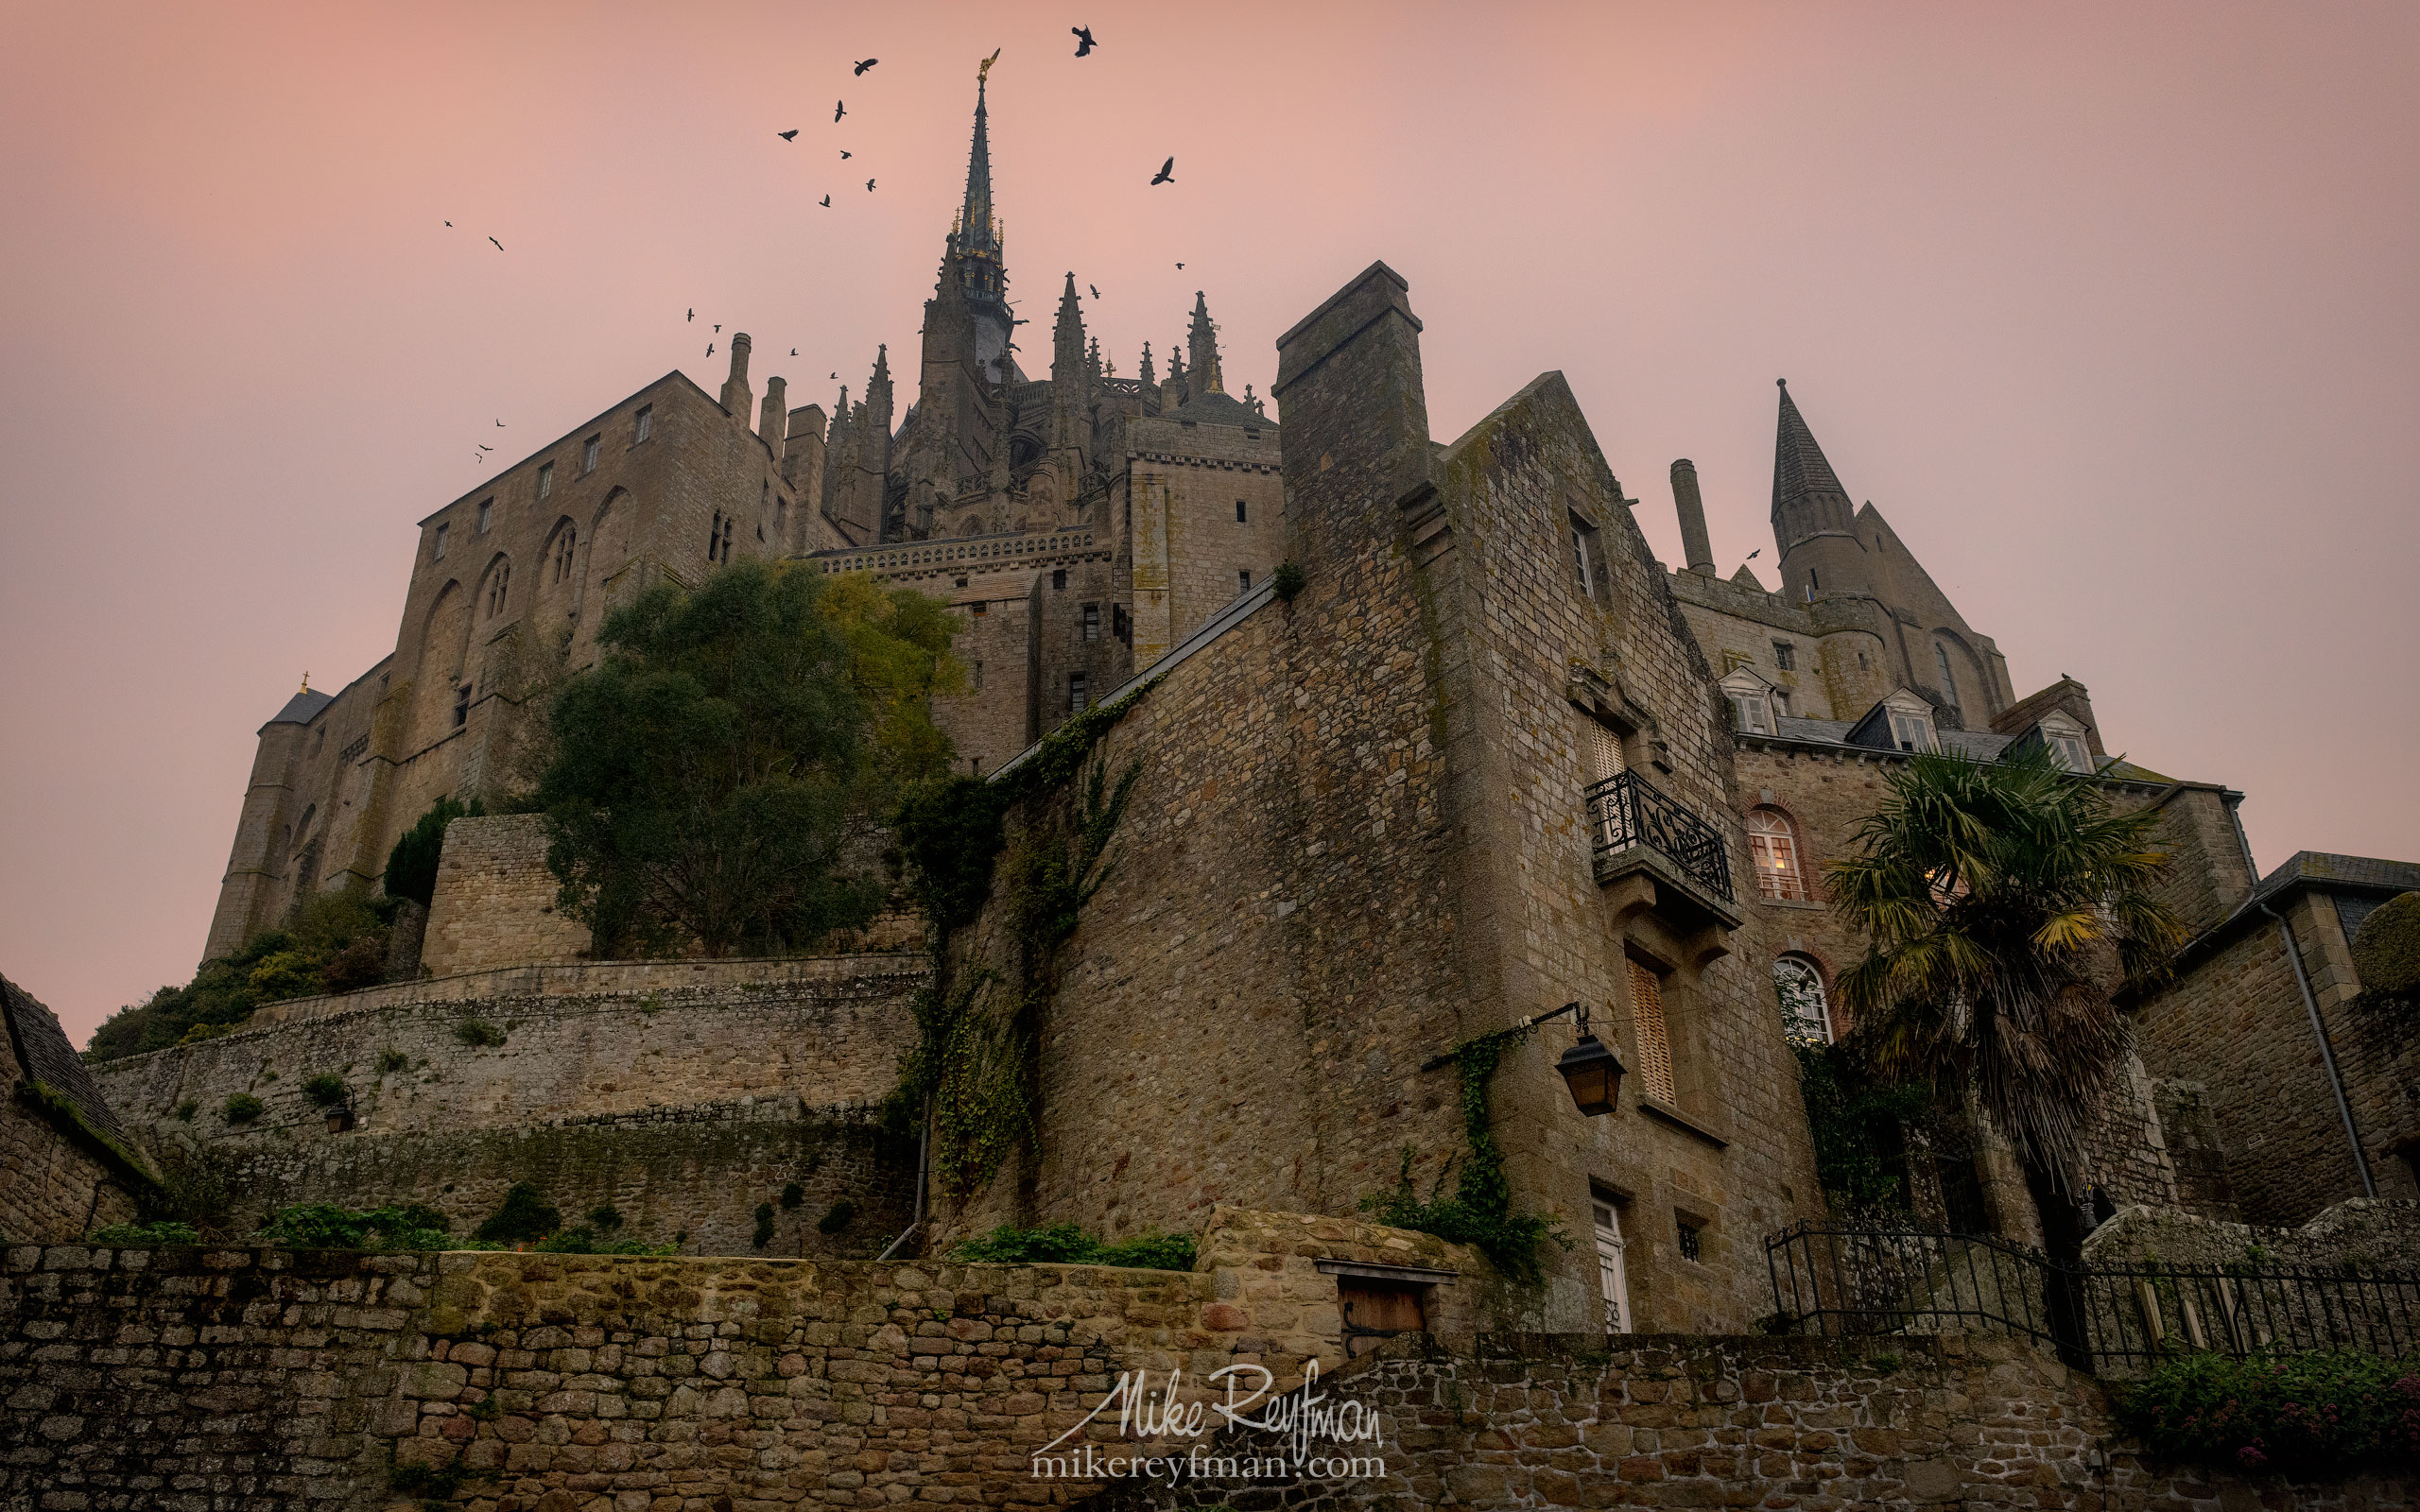 Le Mont-Saint-Michel Island and Benedictine Abbey. Normandy, France SM_MR50A097 - Le Mont Saint Michel Island and Benedictine Abbey, Normandy, France - Mike Reyfman Photography